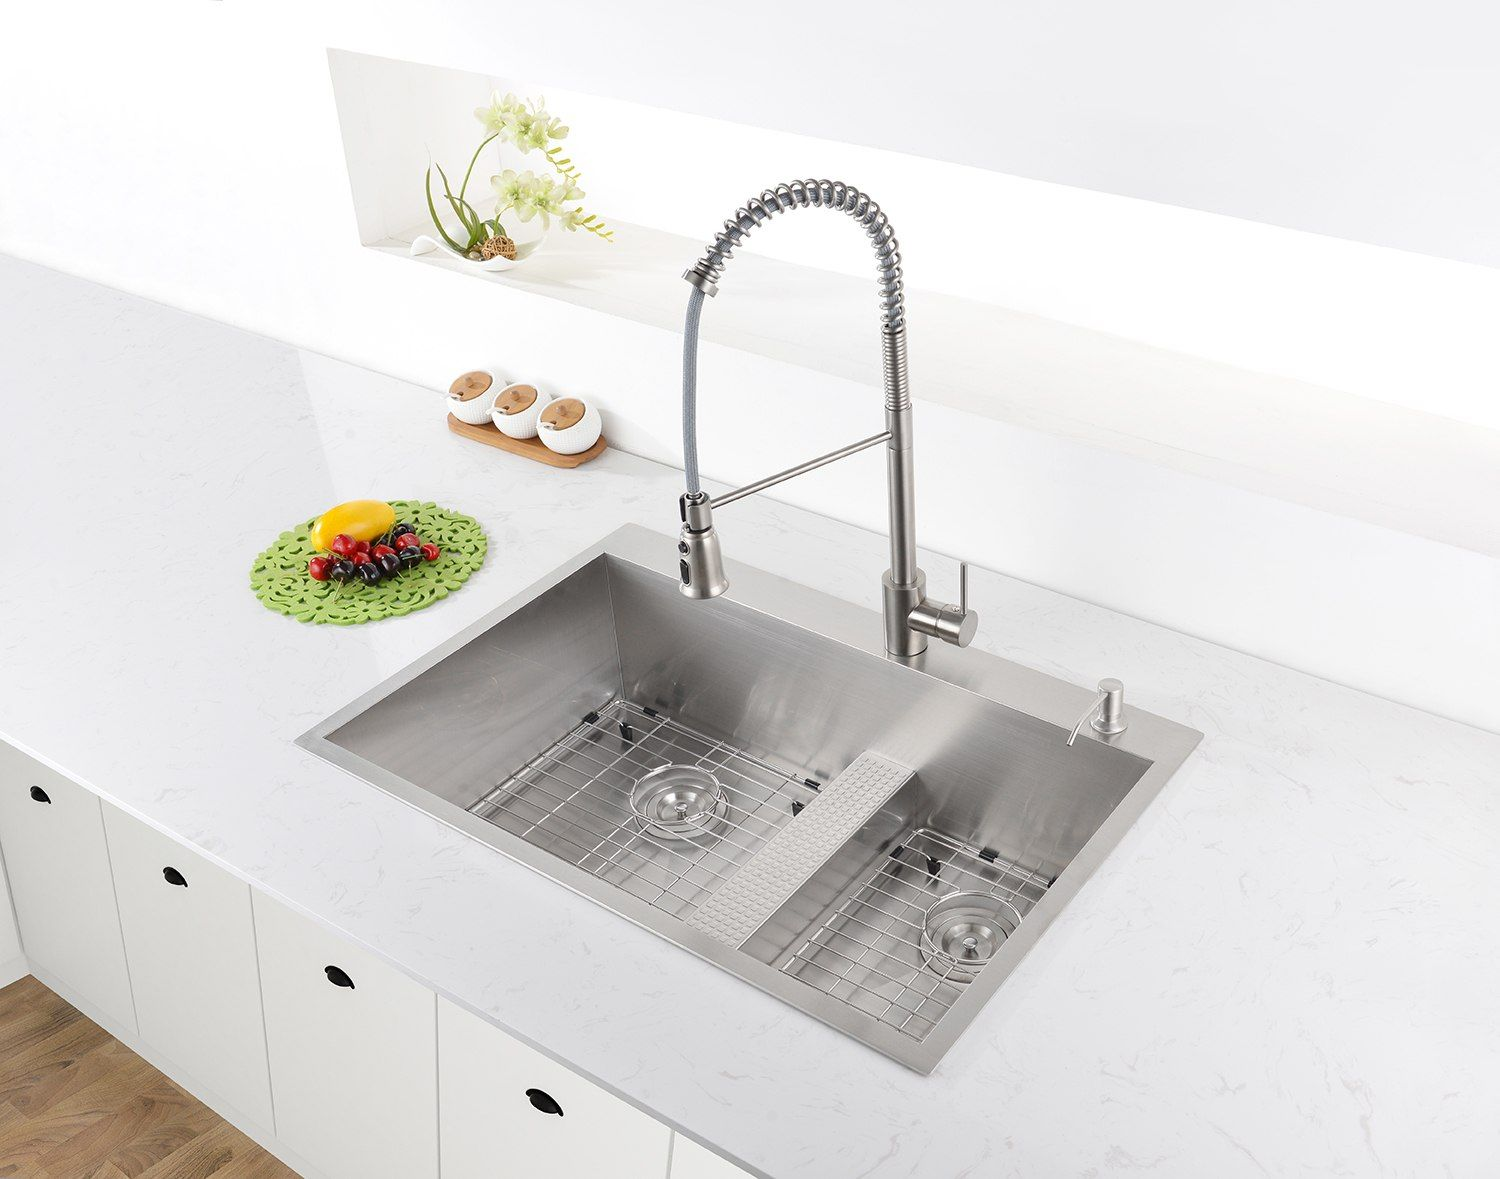 Ruvati Rvh8059 33 Inch Drop In Low Platform Divide Zero Radius 60 40 Double Bowl 16 Gauge Stainless Steel Topm With Images Top Mount Kitchen Sink Complete Kitchens Divider